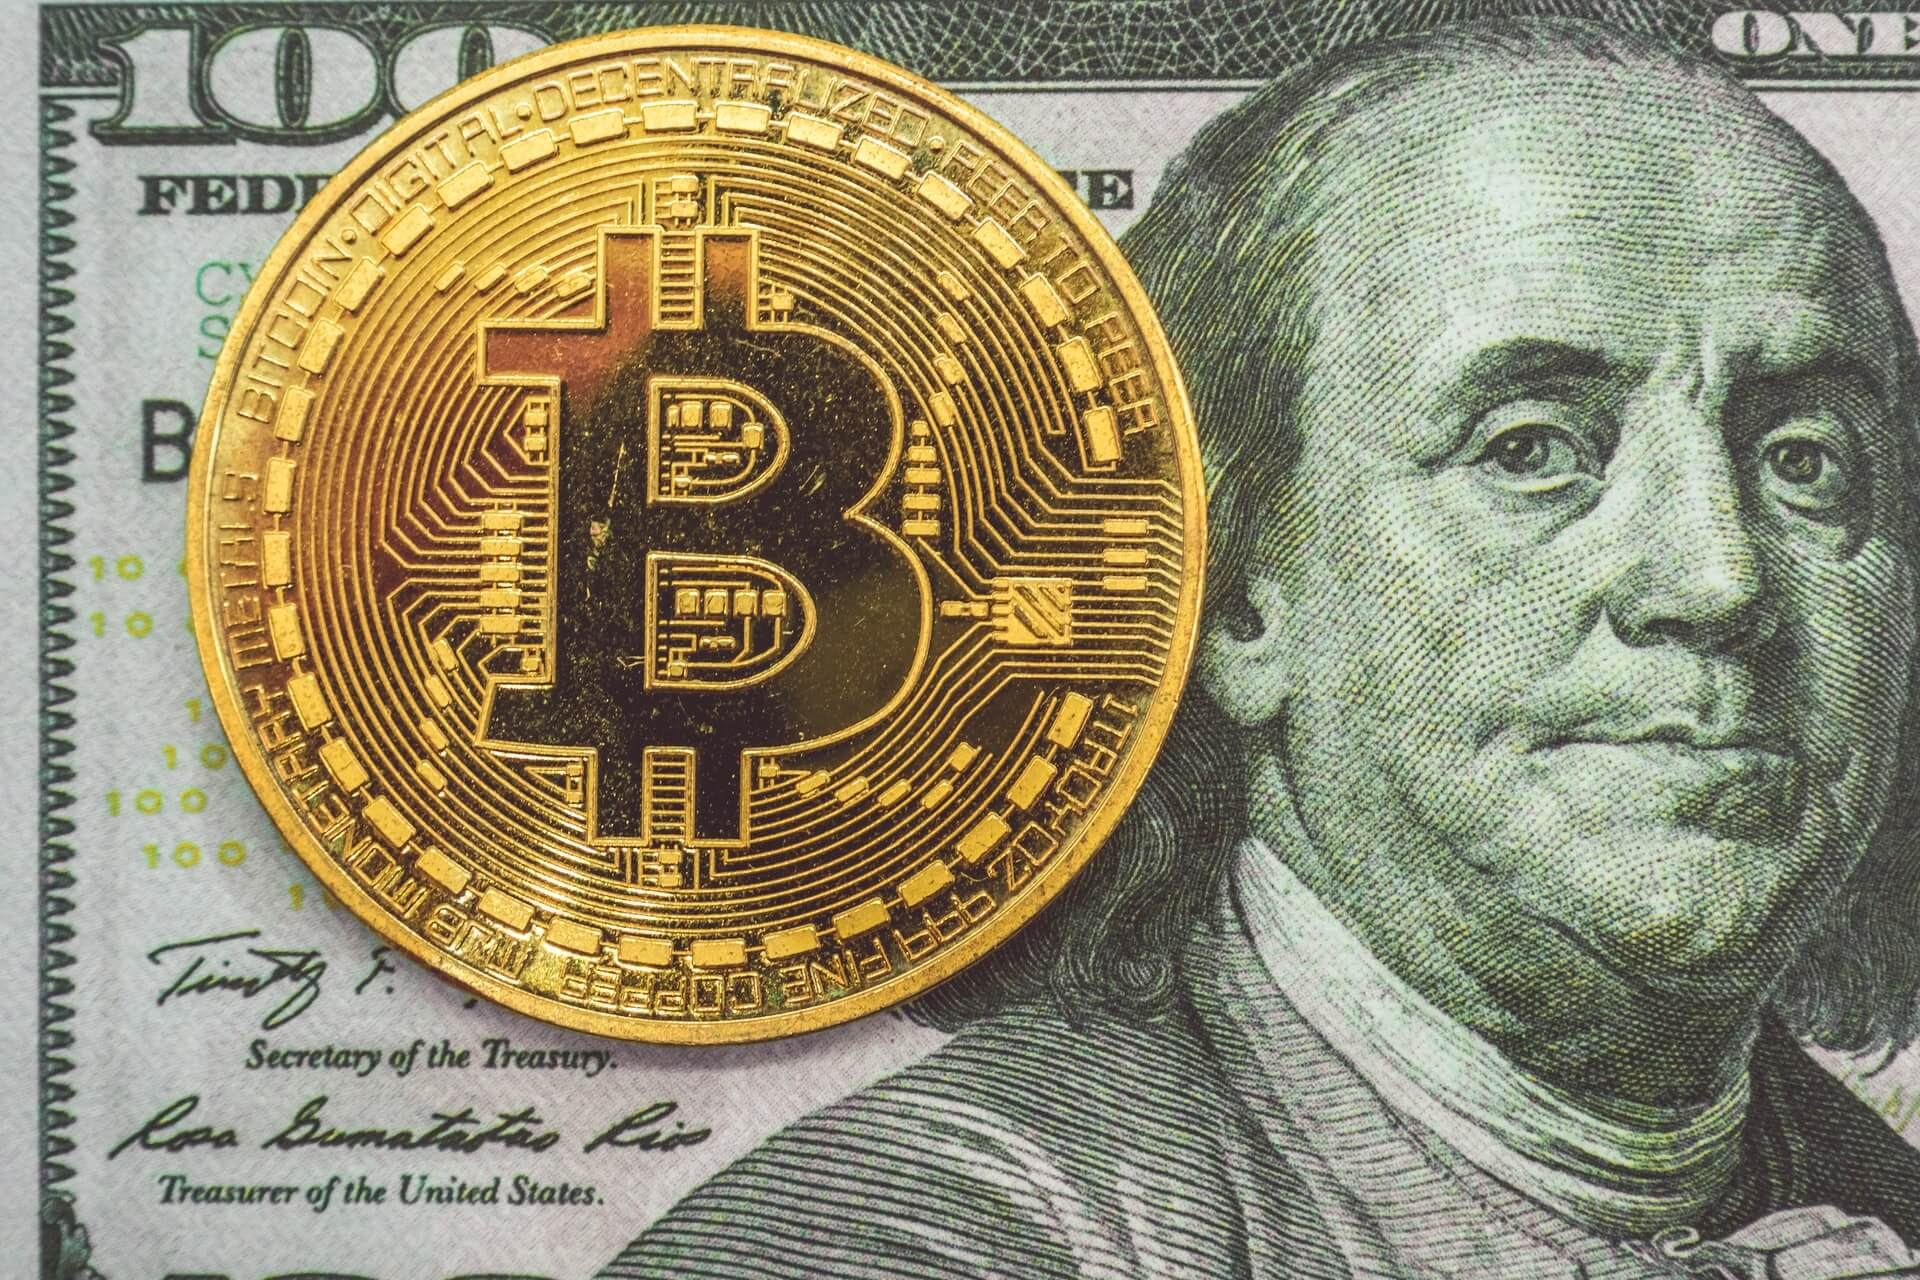 A Bitcoin on top of a $100 bill